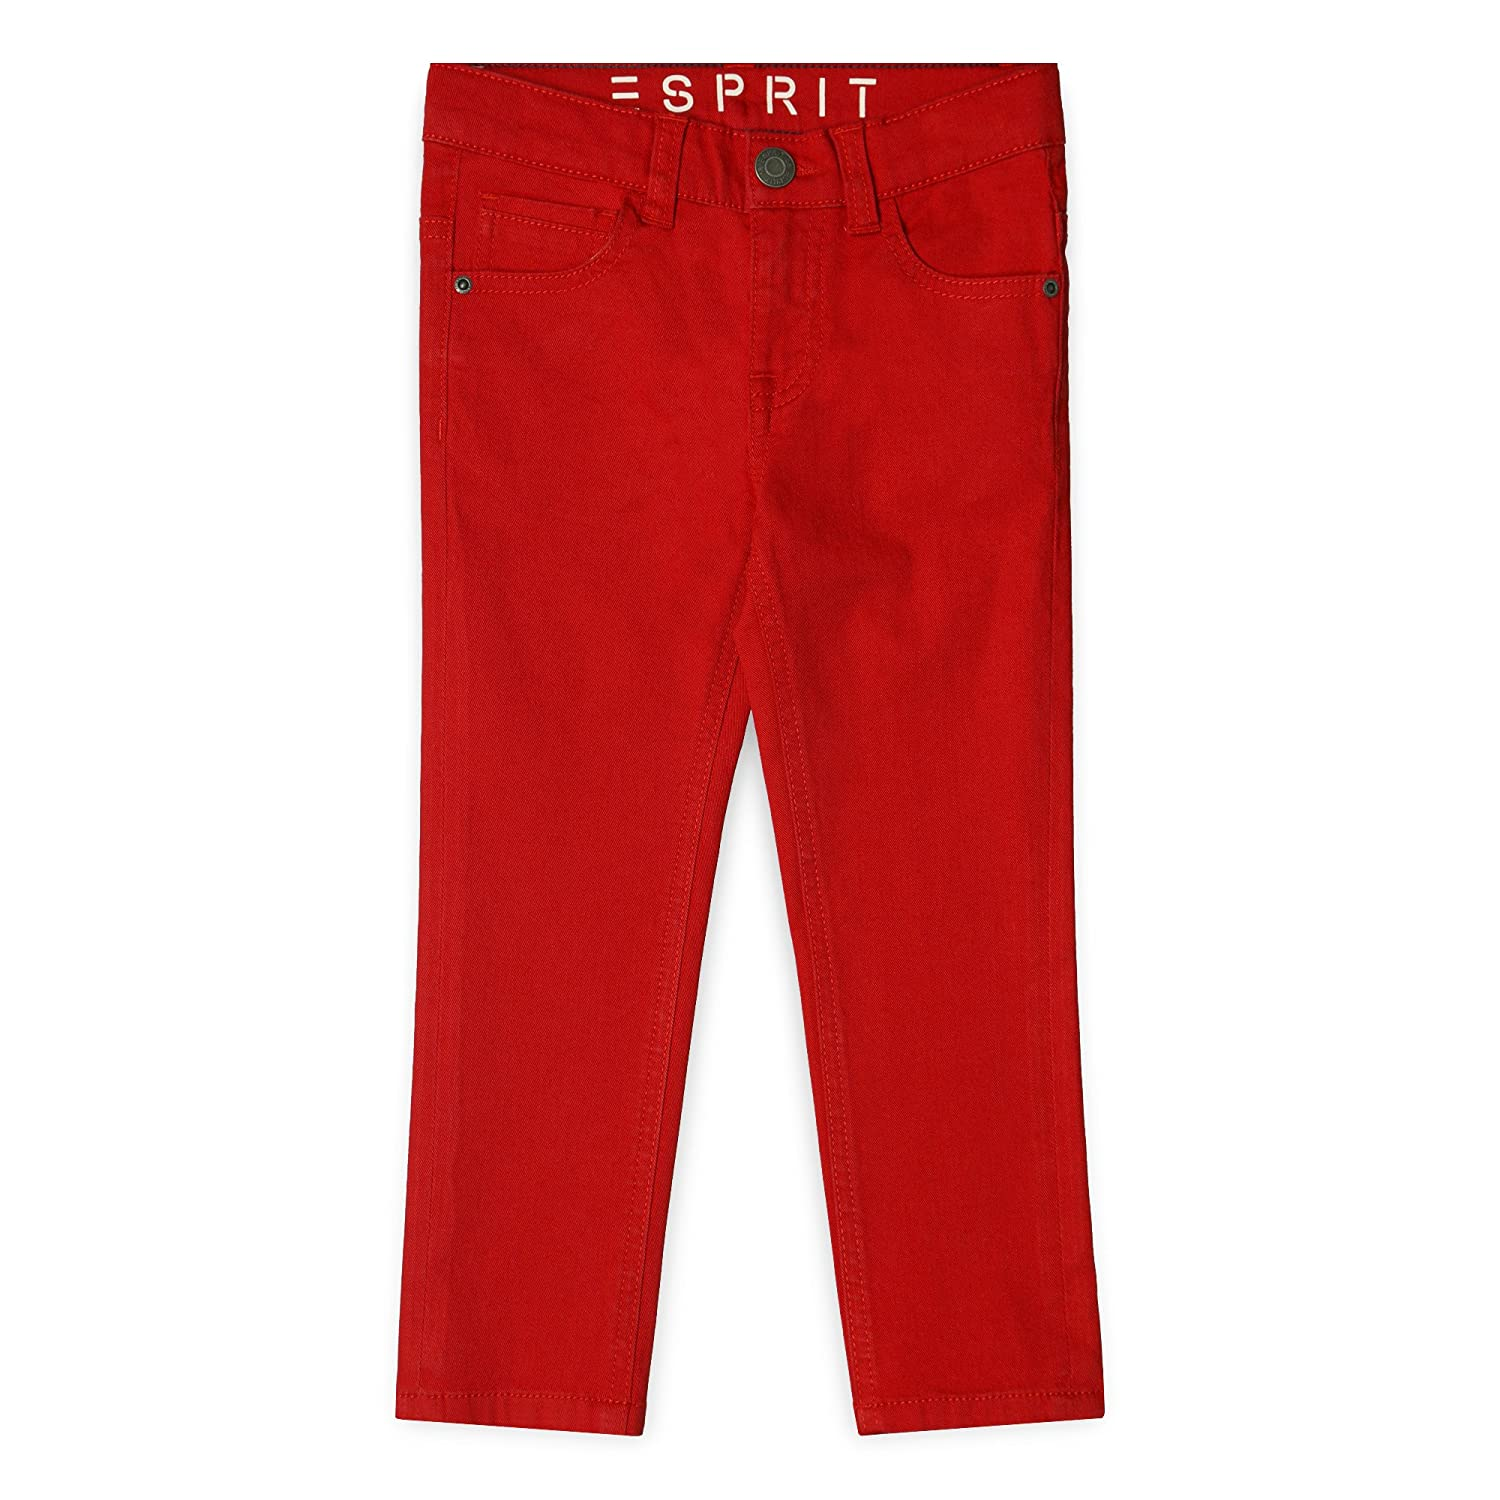 ESPRIT Kids Denim Jeans for Boy Bambino RM2903408